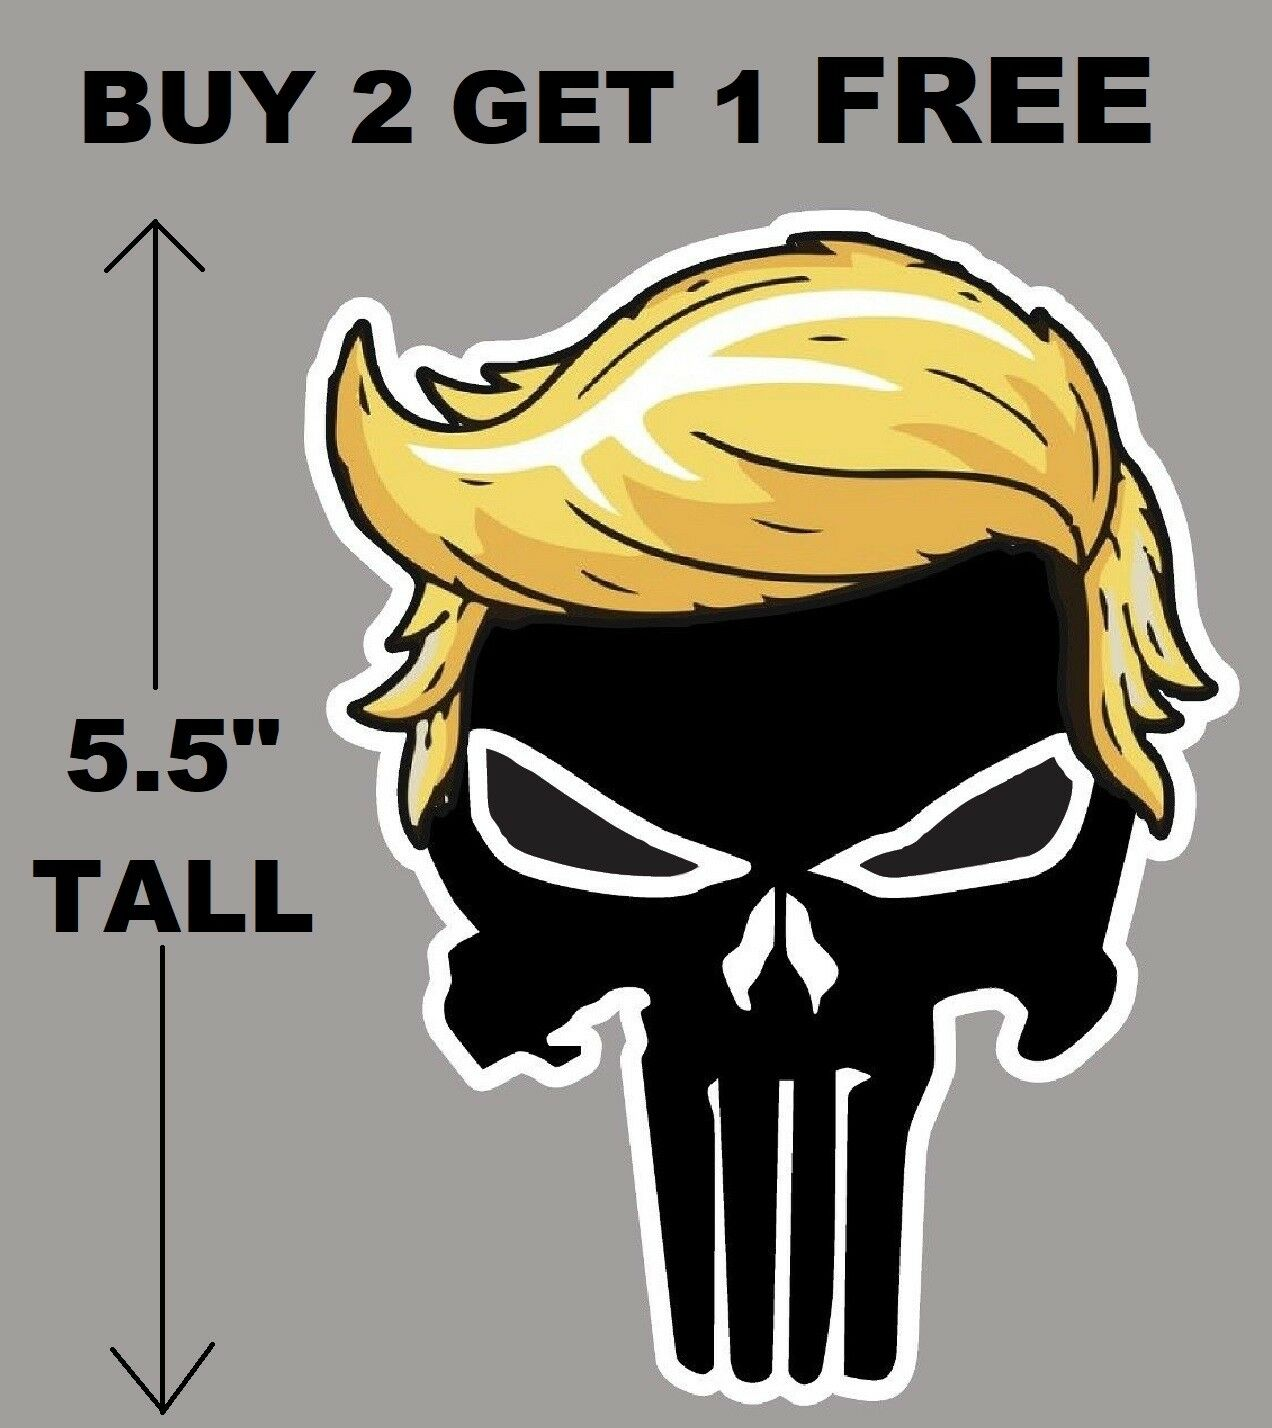 Home Decoration - TRUMP PUNISHER with hair window decal bumper sticker funny pro USA NRA 2A MAGA